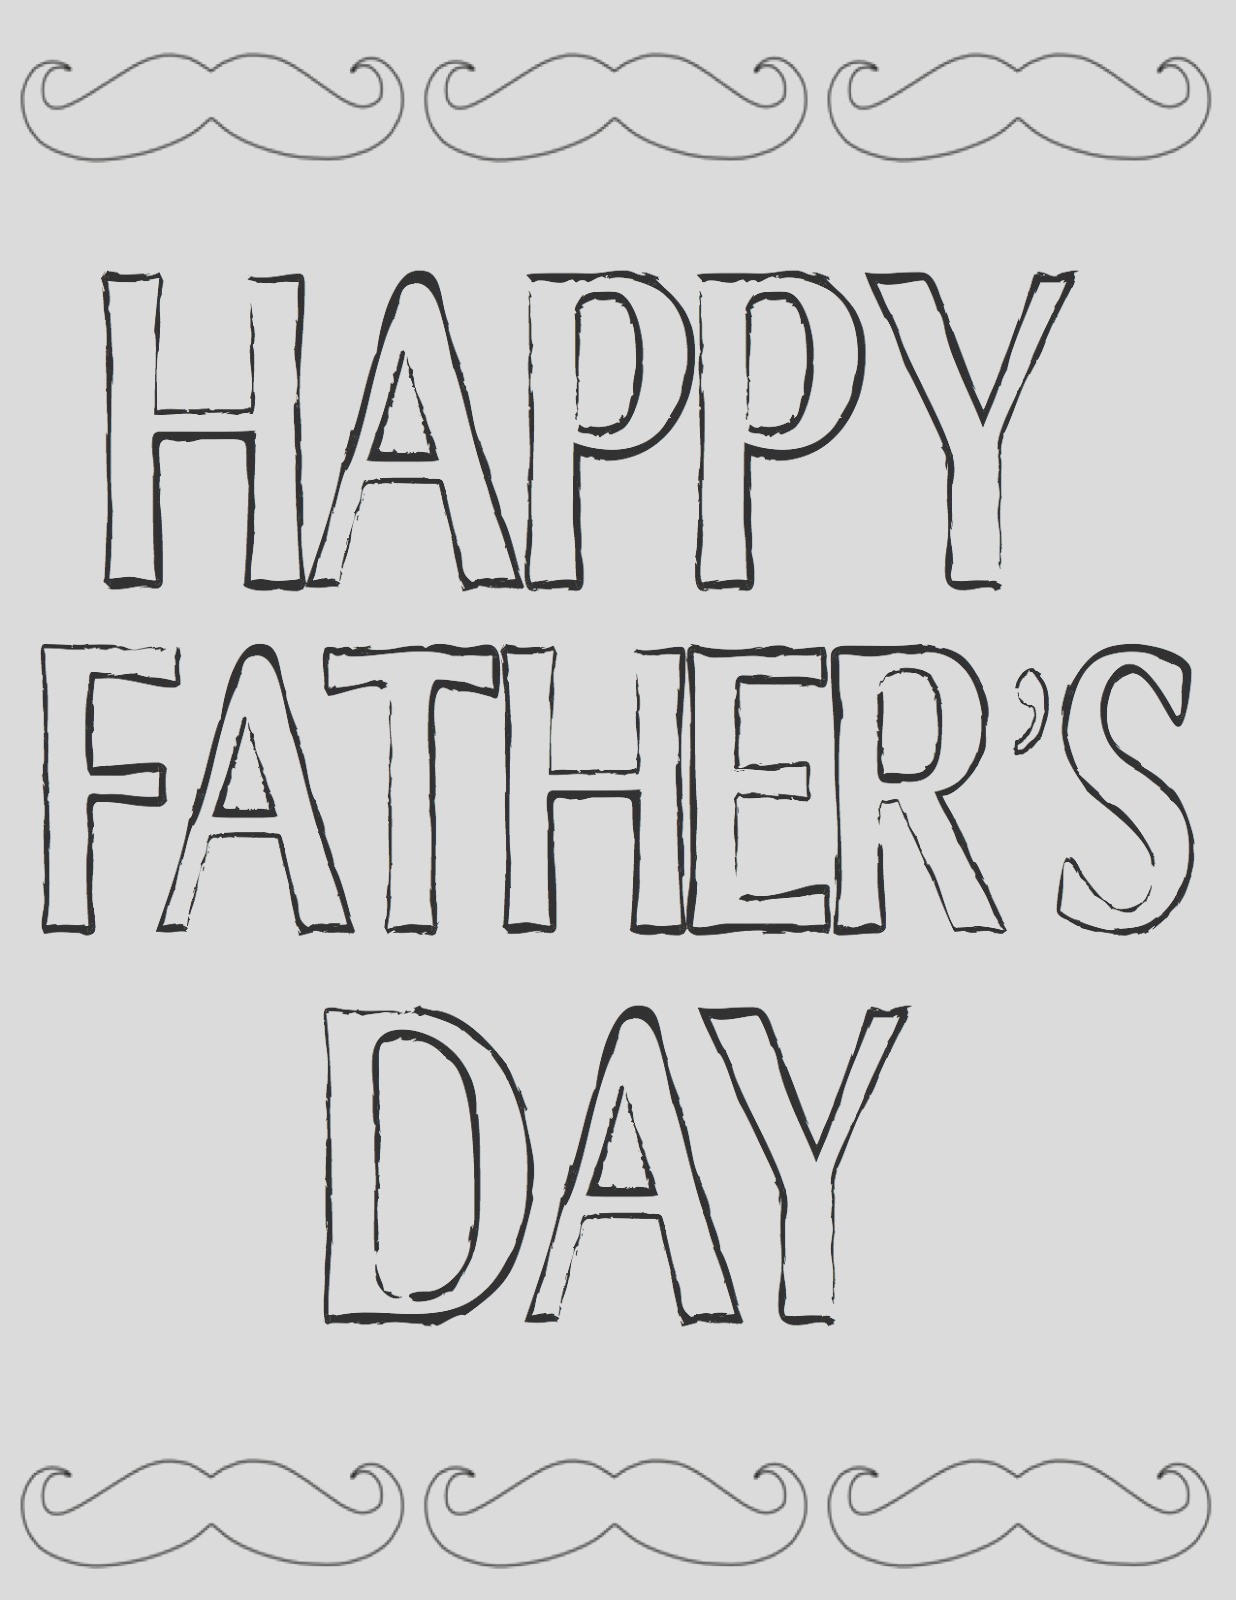 free happy fathers day coloring pages printable sheets cards images pictures